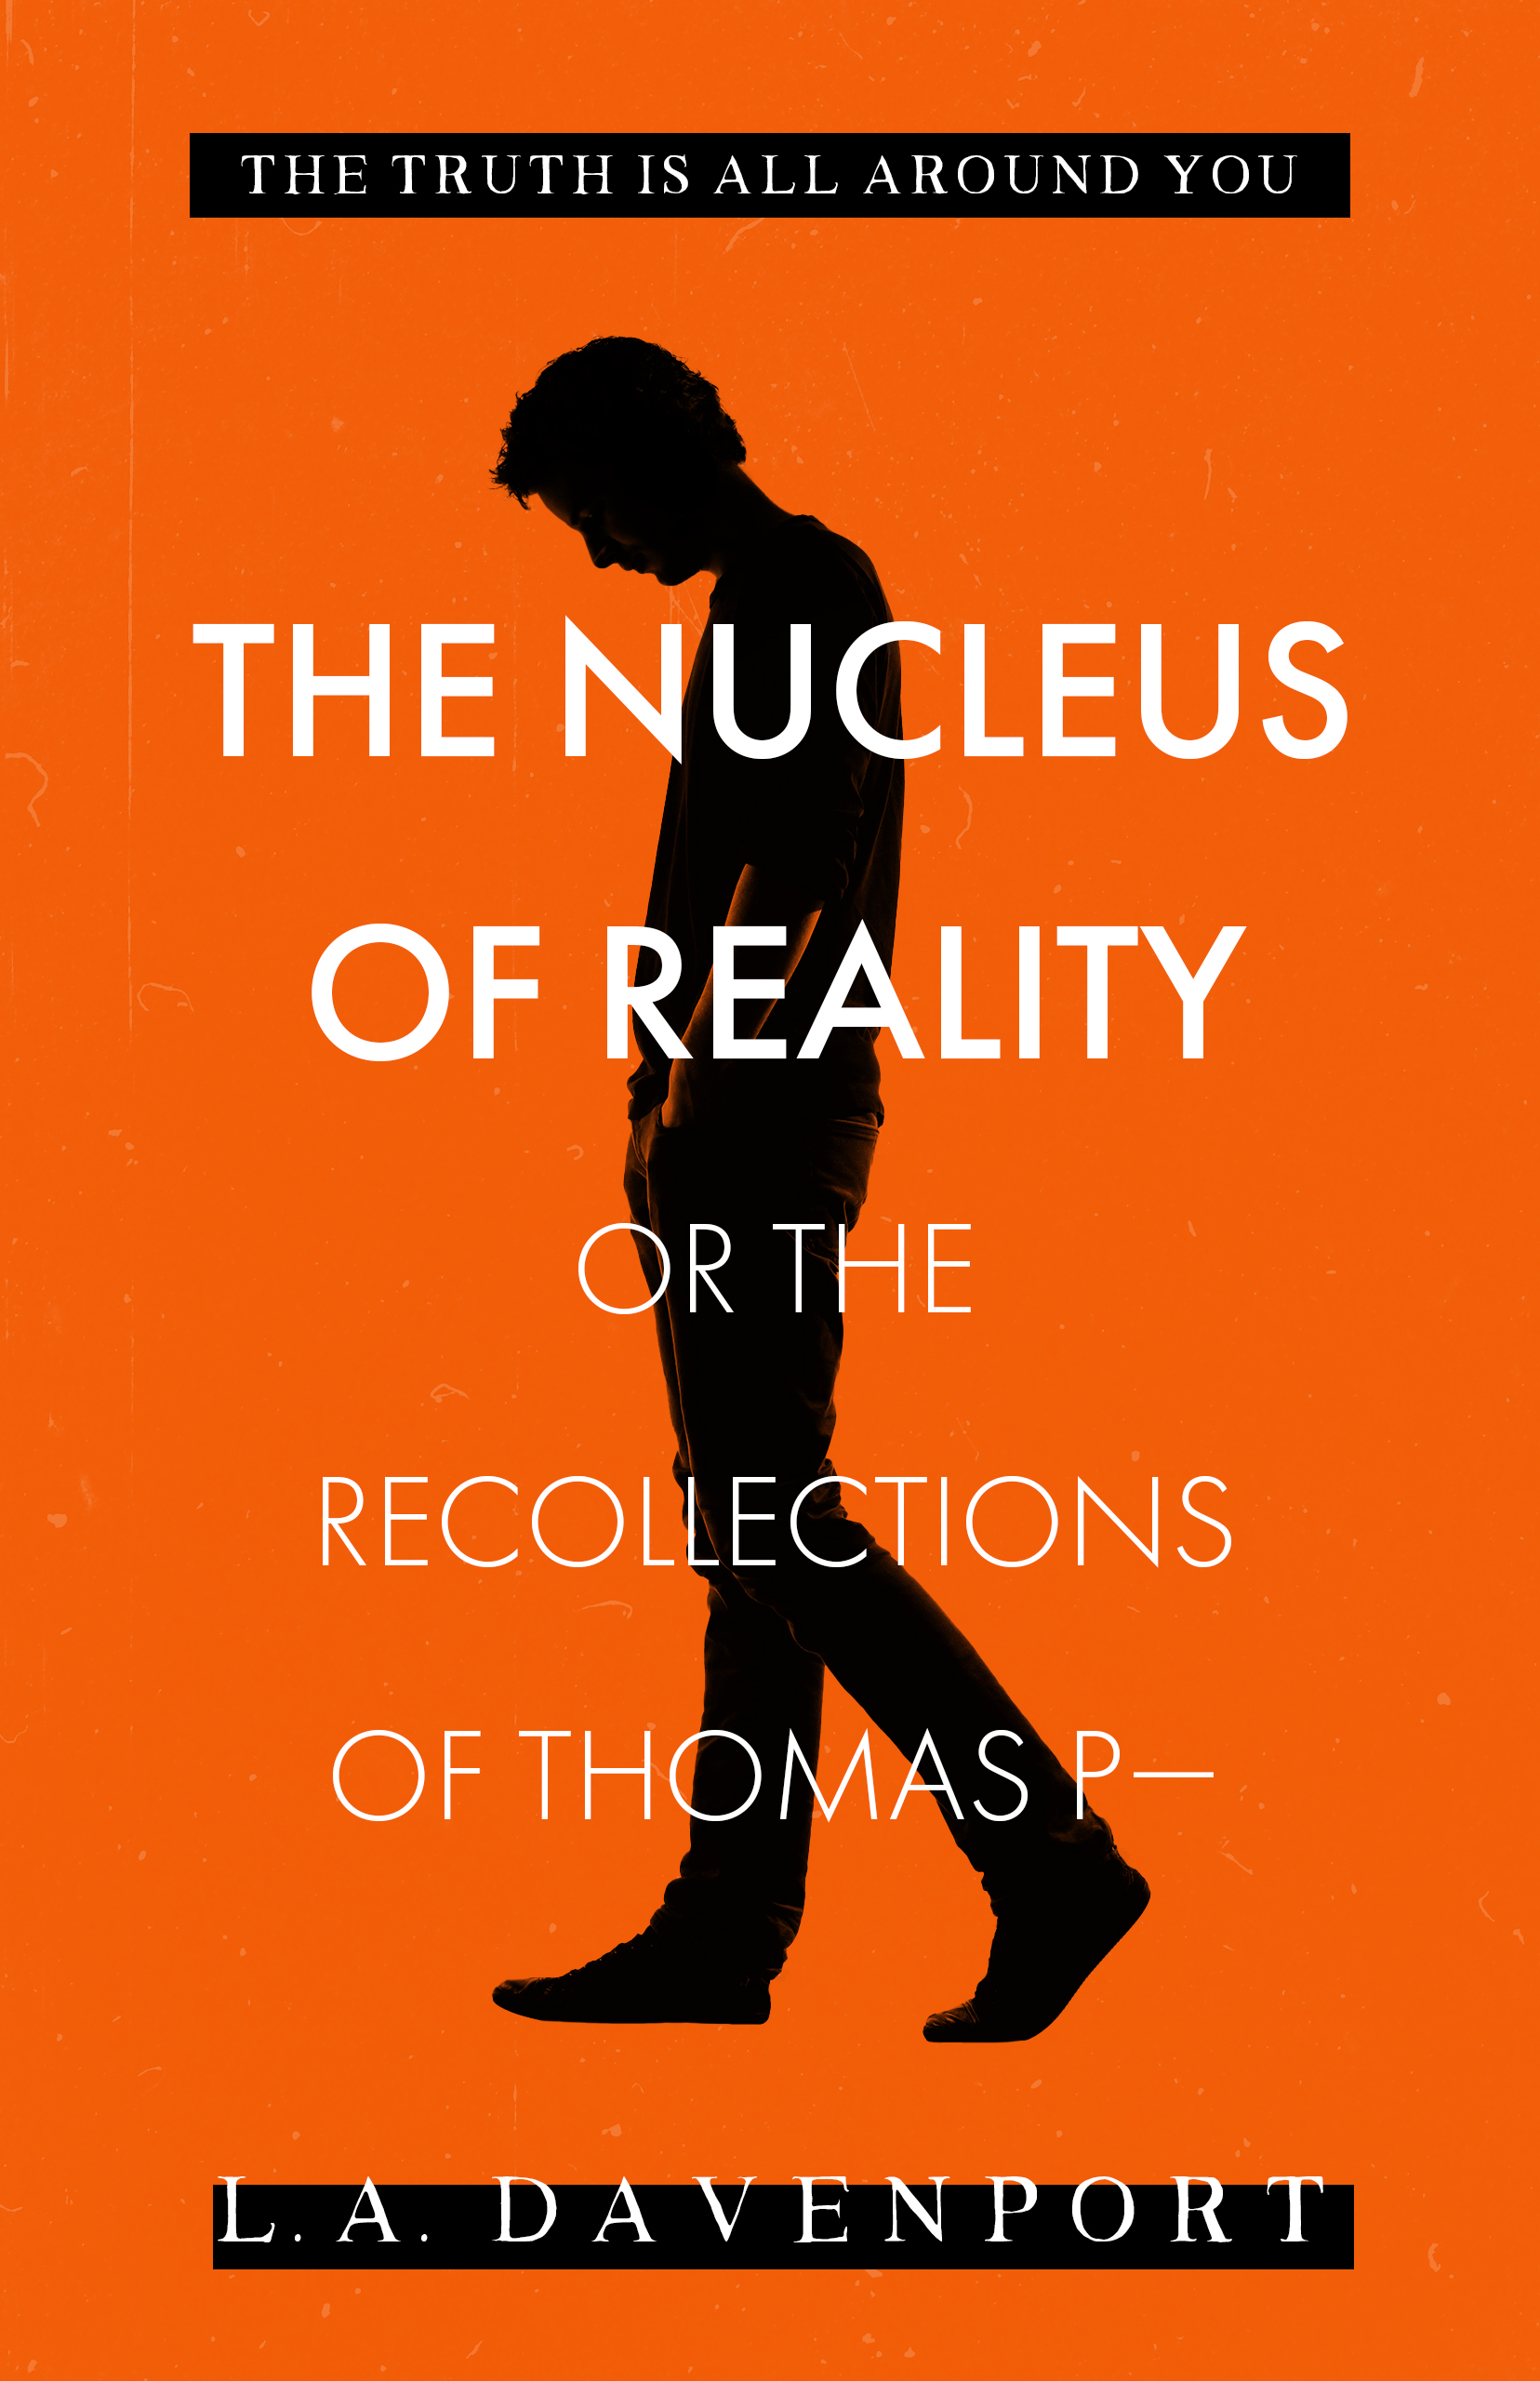 The Nucleus of Reality by LA Davenport